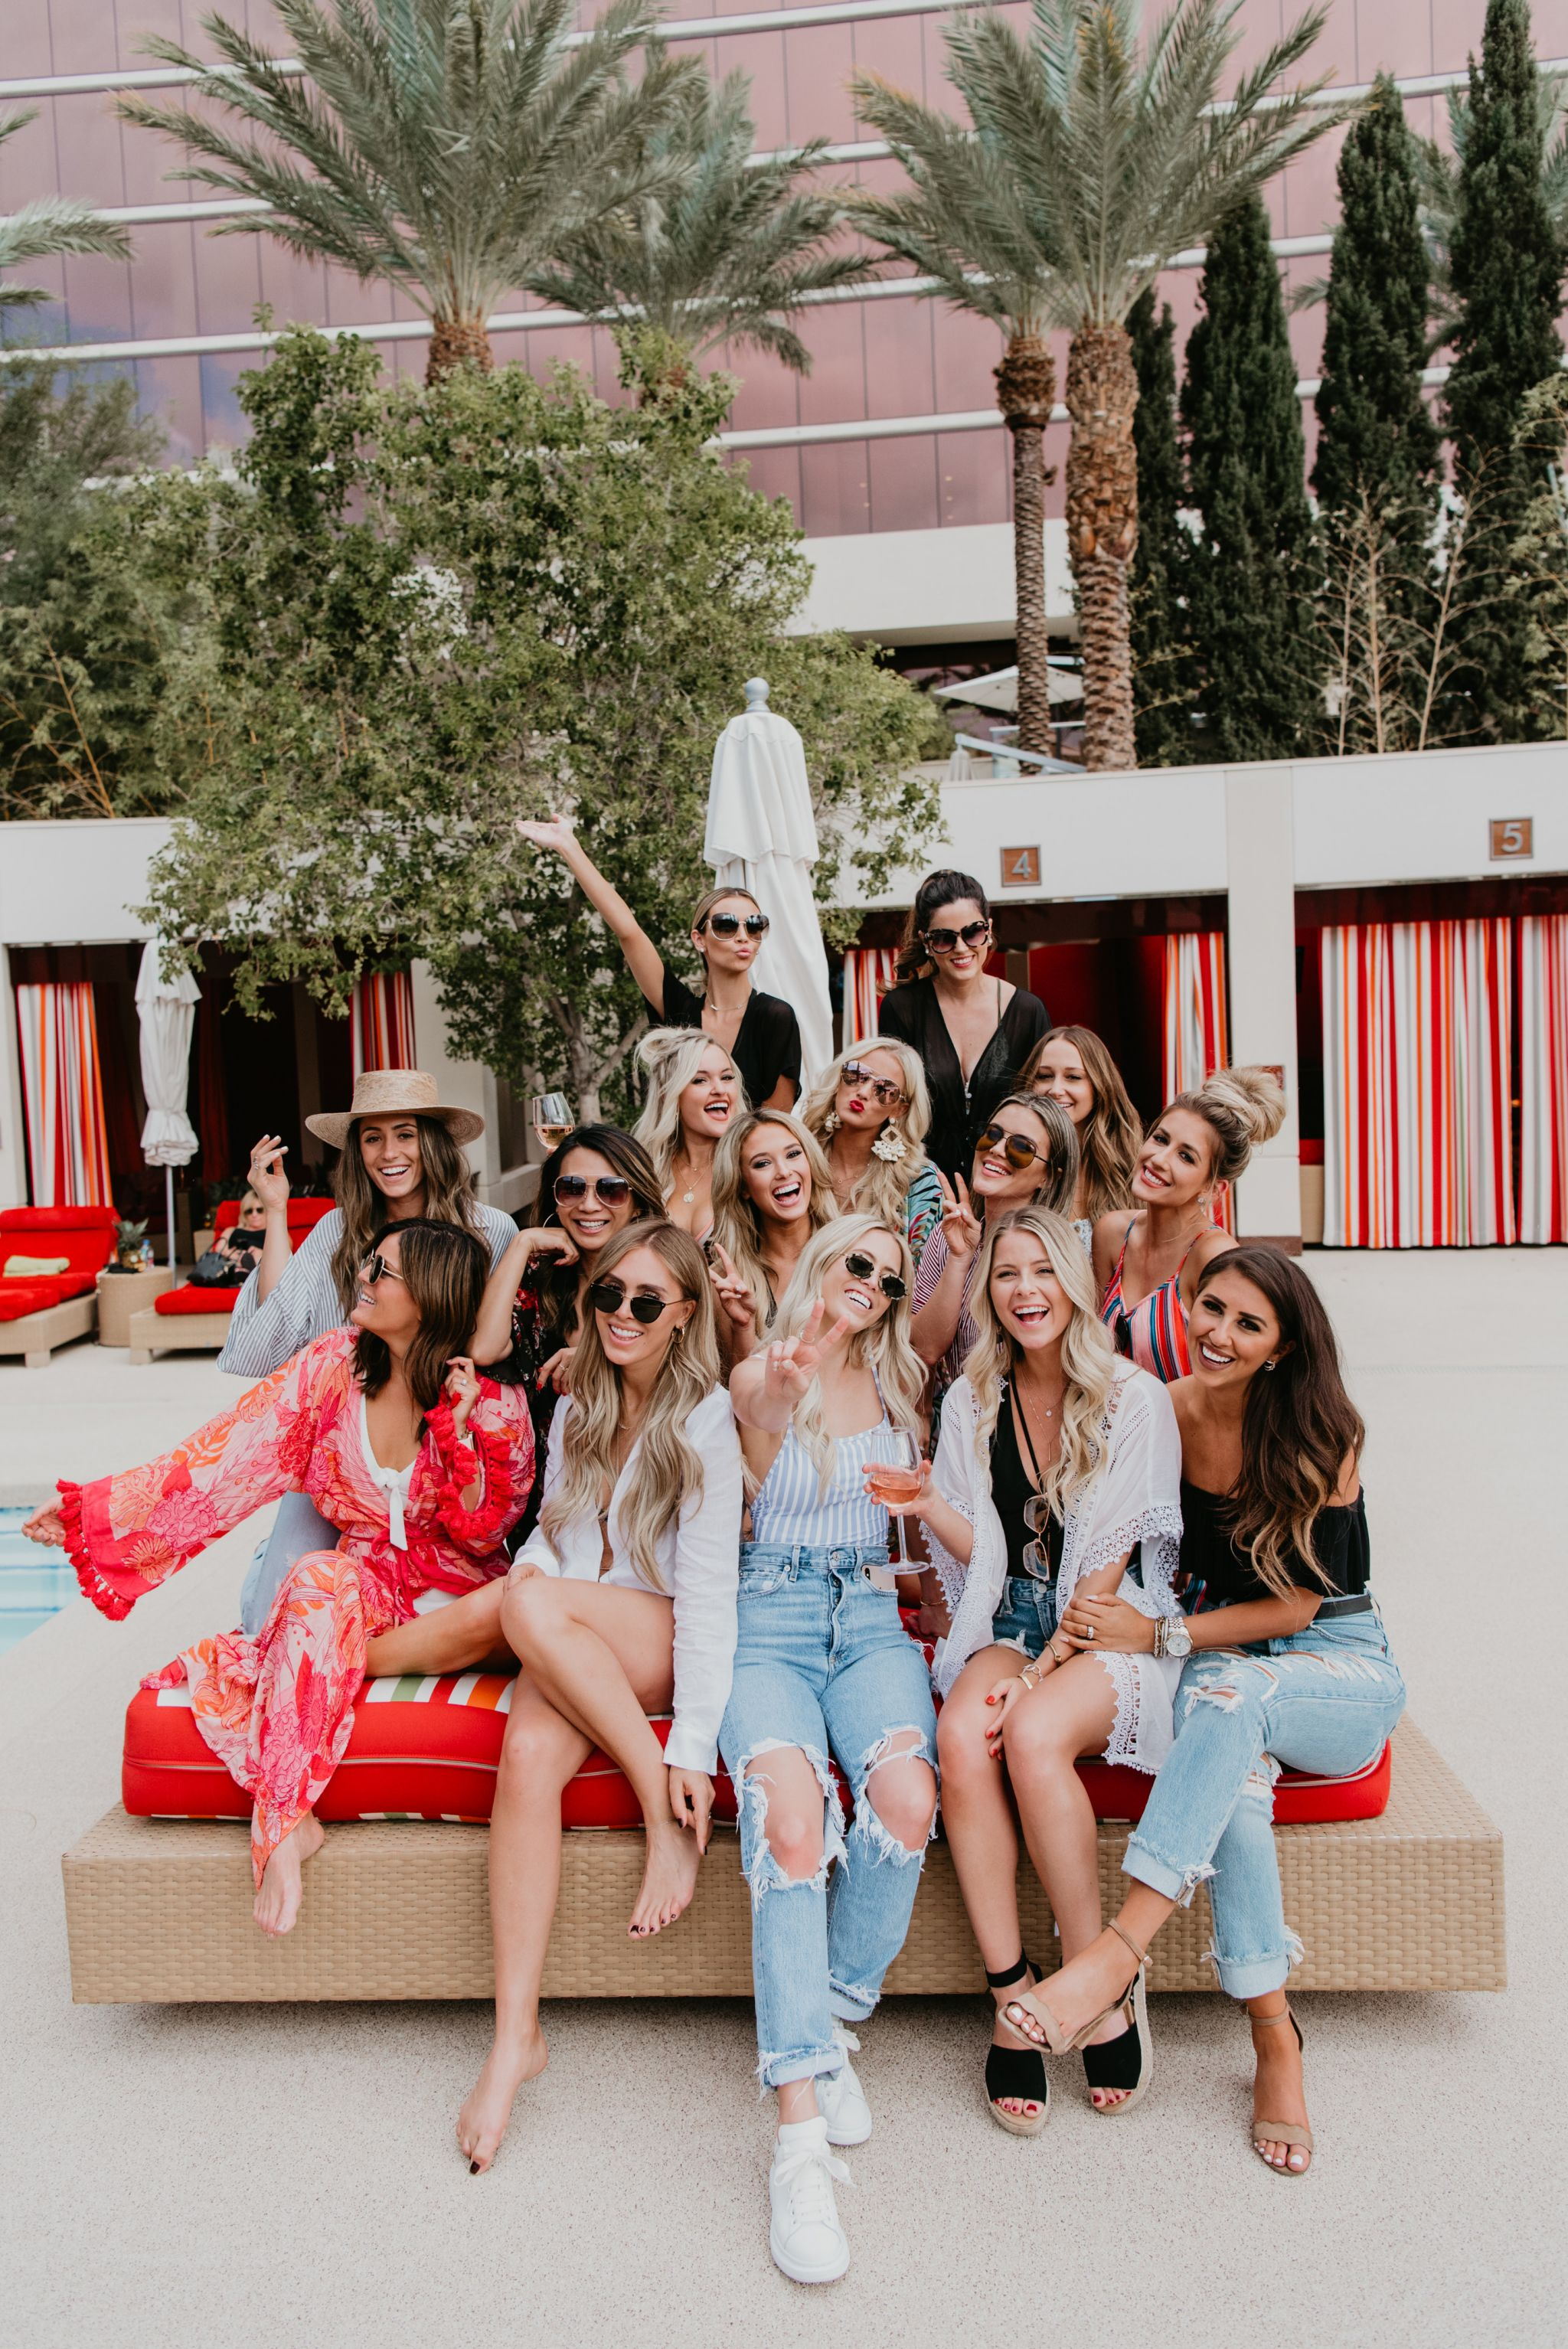 Wilson Gabrielle Style Society Las Vegas, Dress up Buttercup, Champagne and Chanel, Jennifer Worman Travel Blogger, Pool Party Red Rock Hotel